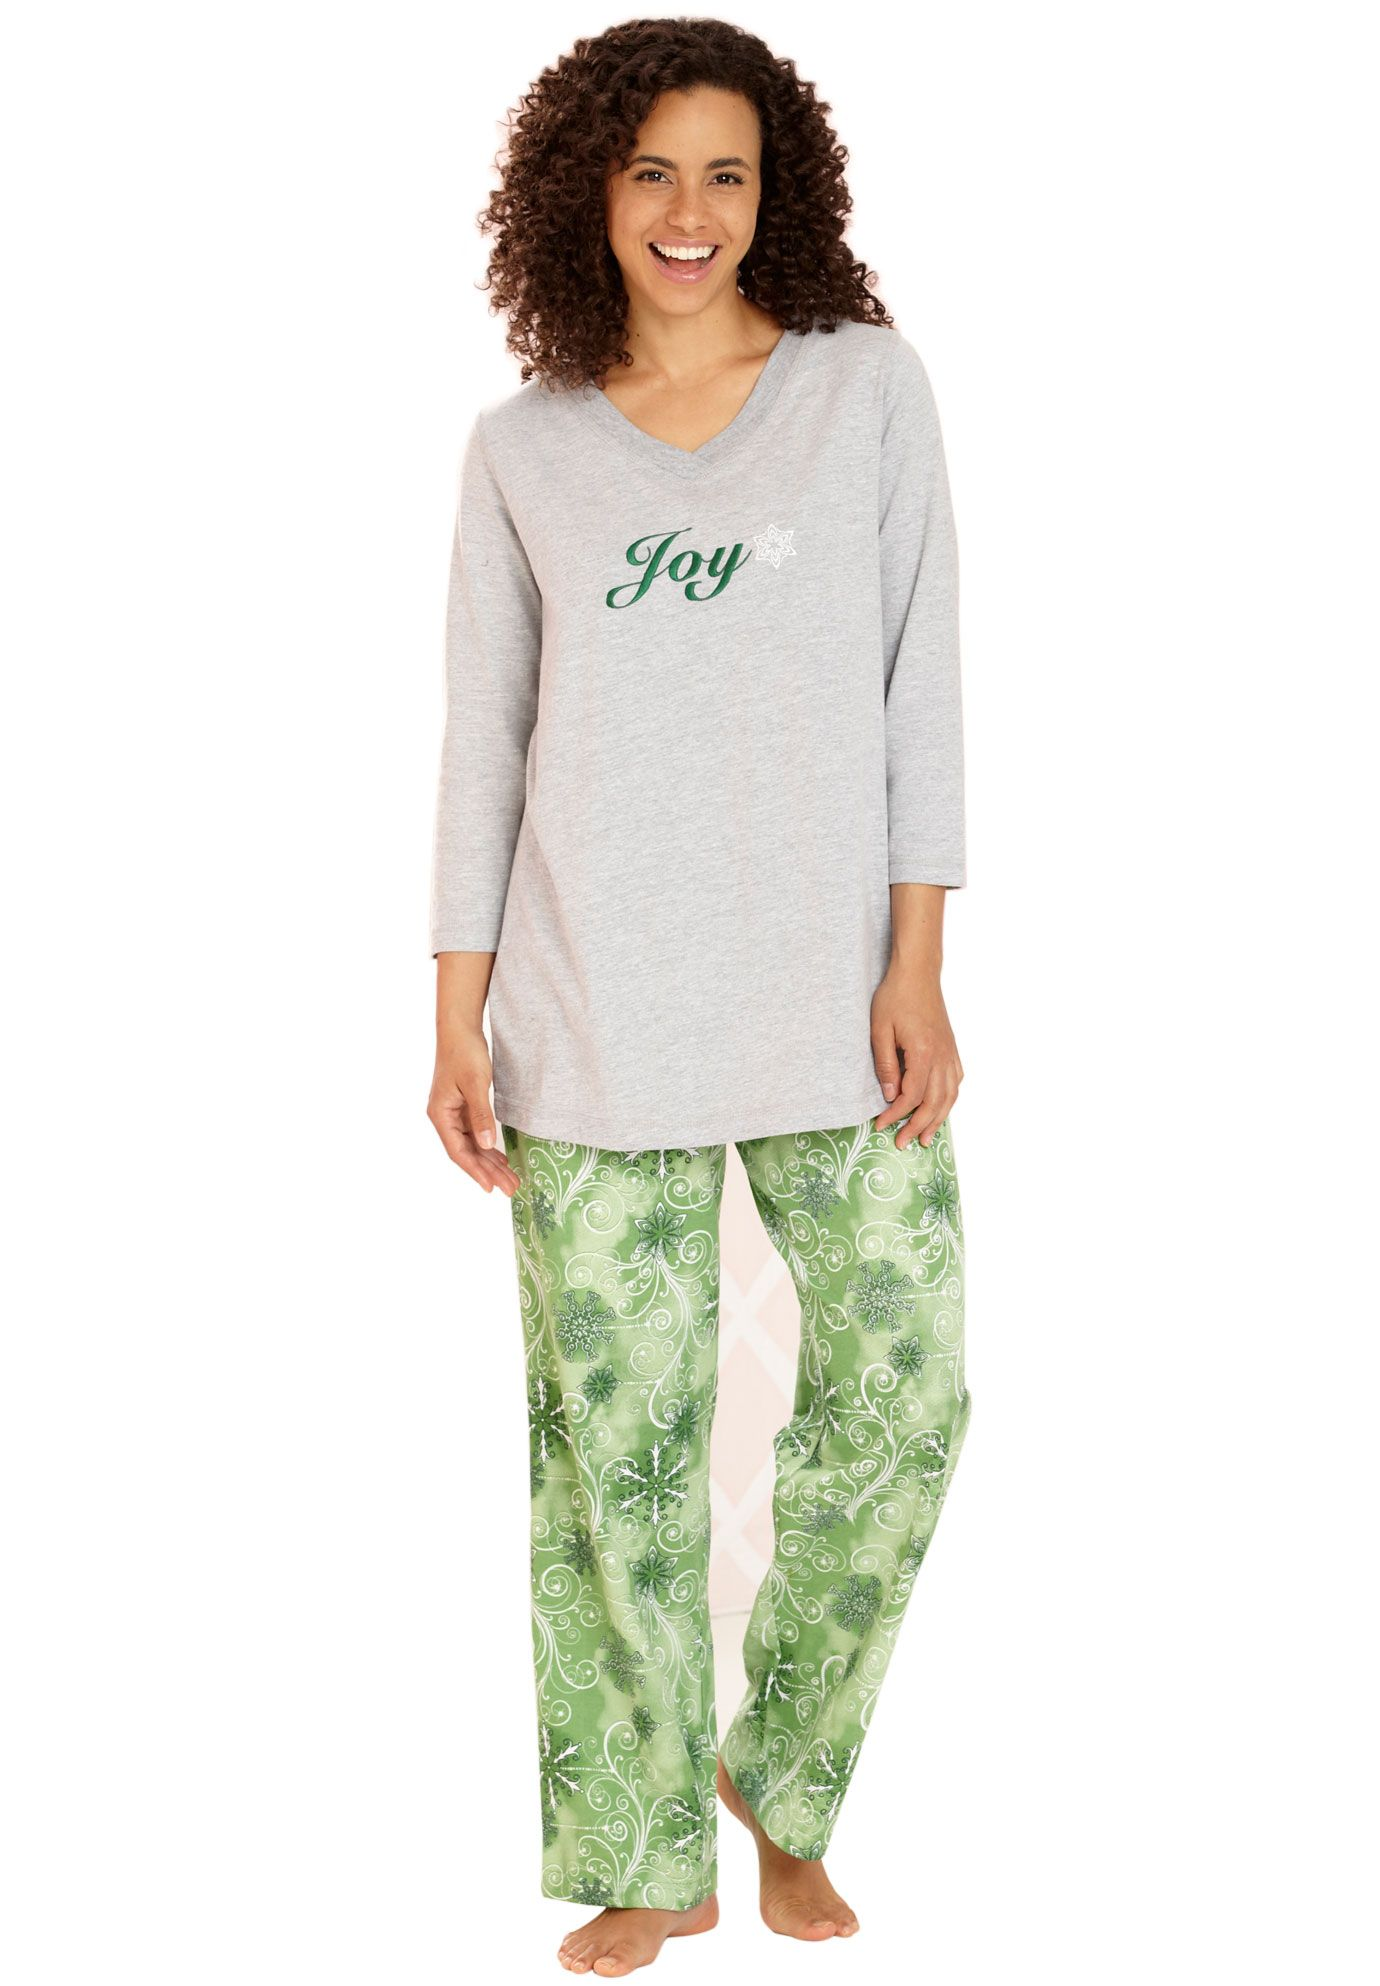 For Karen Joy 3 4 Sleeve Pajama Set By Dreams Co Green Snow Swirl Plus Size 60 Off Sleep Collect Plus Size Pajamas Plus Size Sleepwear Pajama Set Women